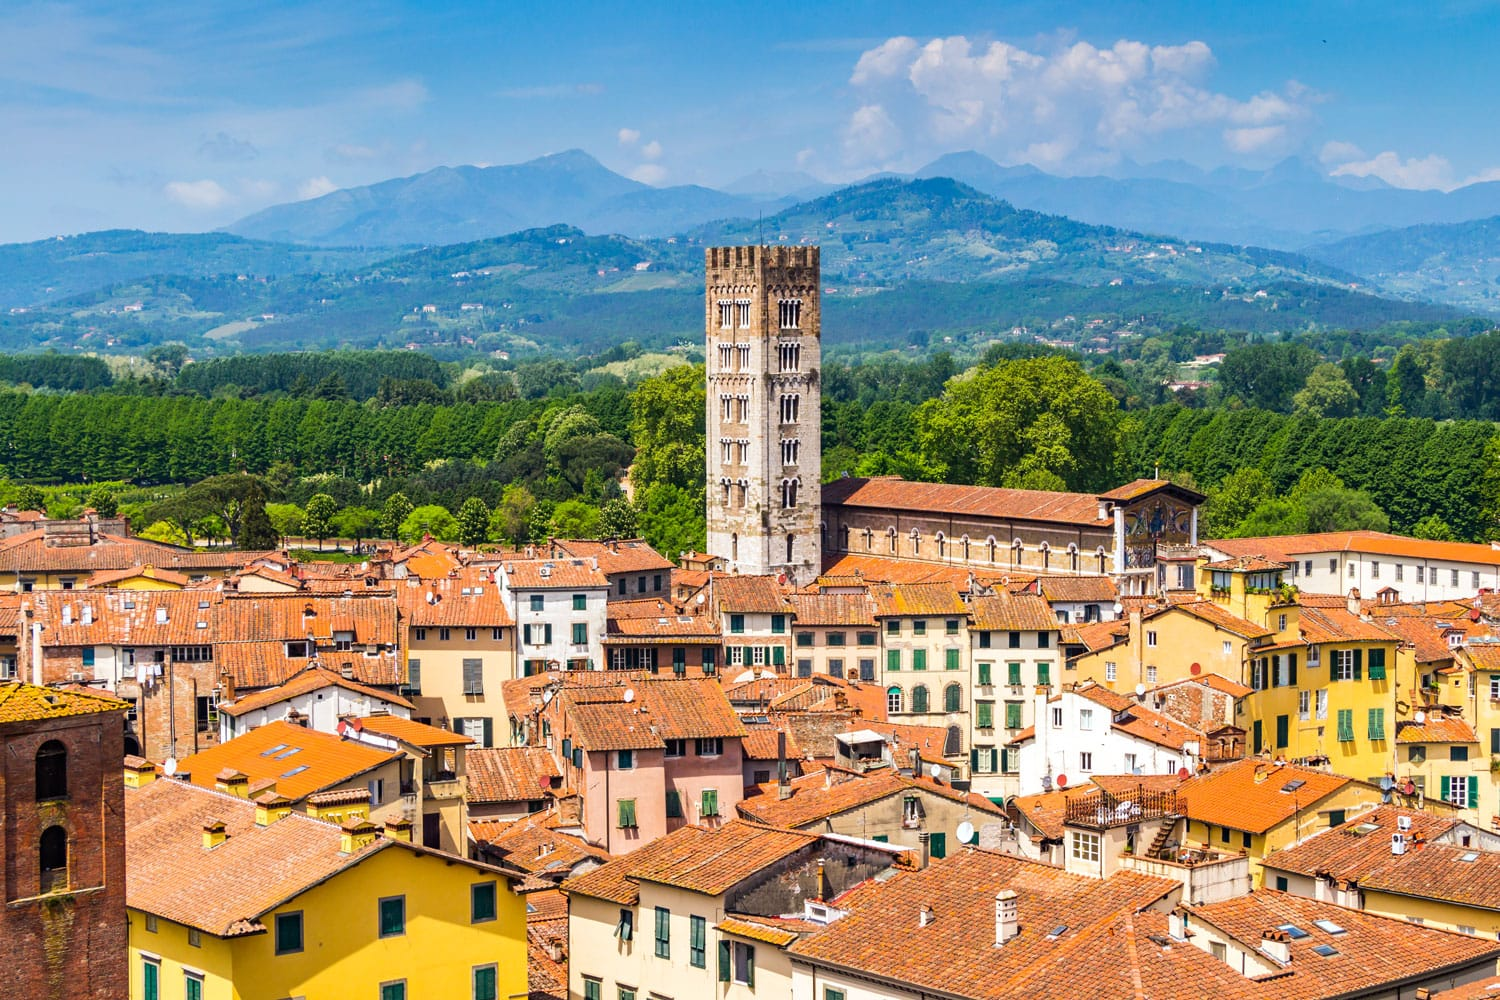 View over Italian town Lucca with typical terracotta roofs